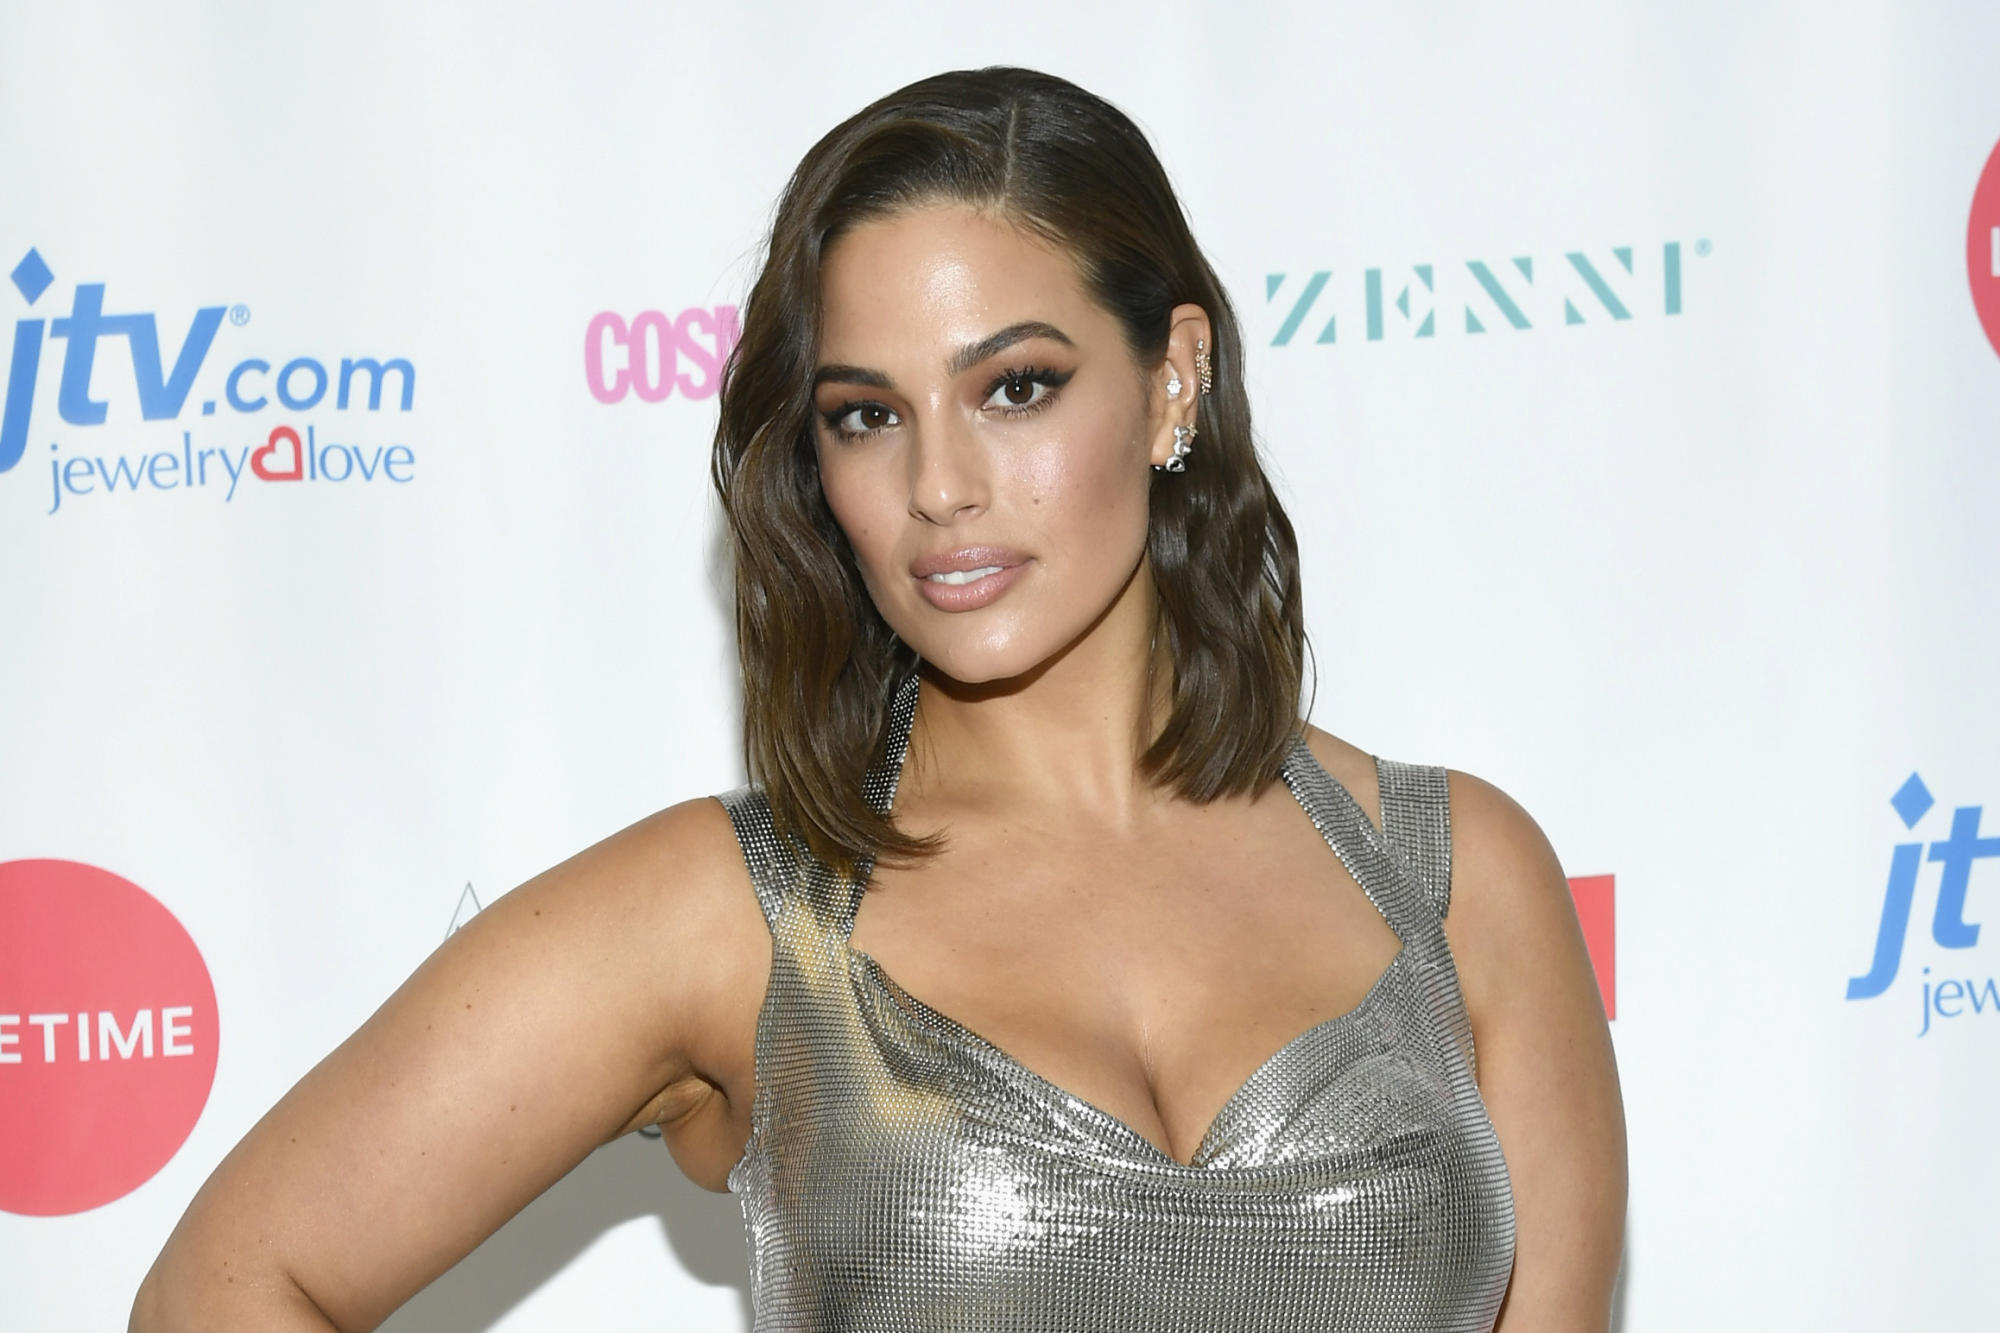 'Is this all you know how to post?': Ashley Graham's latest breastfeeding selfie has fans divided - Yahoo Lifestyle